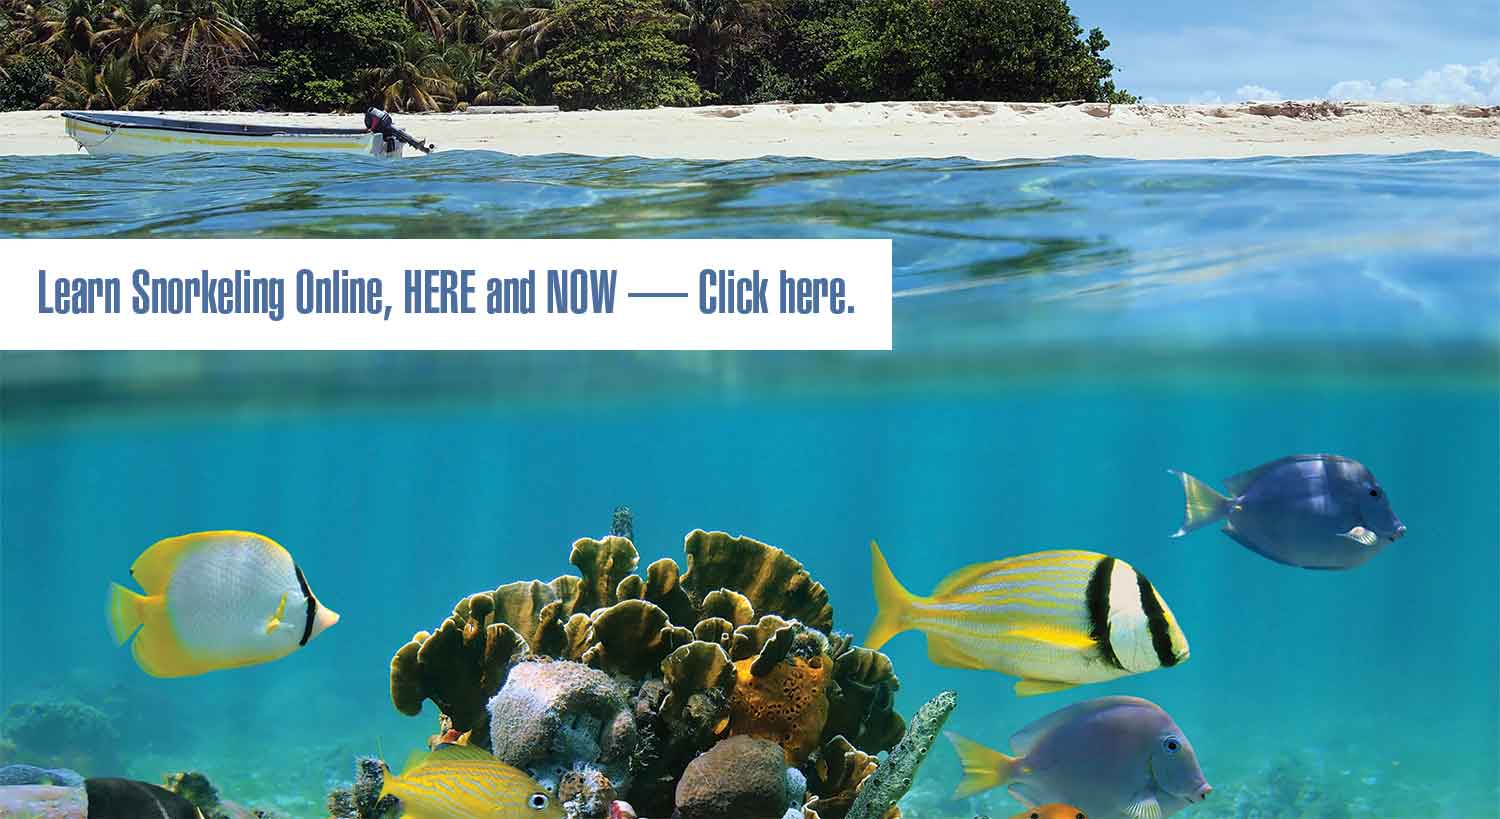 Learn Snorkeling Online Here and Now